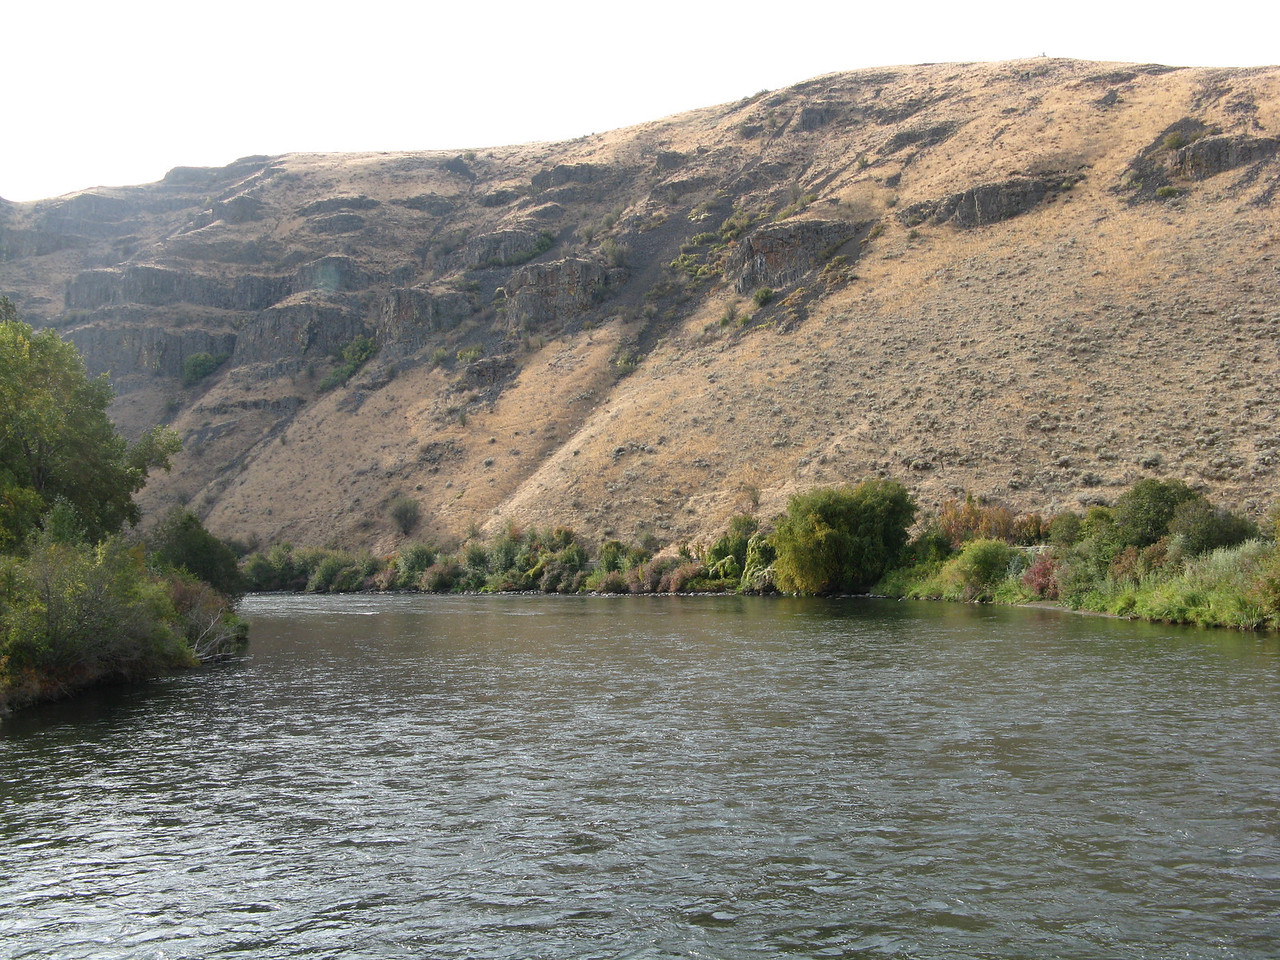 This is a downstream view of the Yakima River and volcanic rock layers above it, looking from the foot bridge.